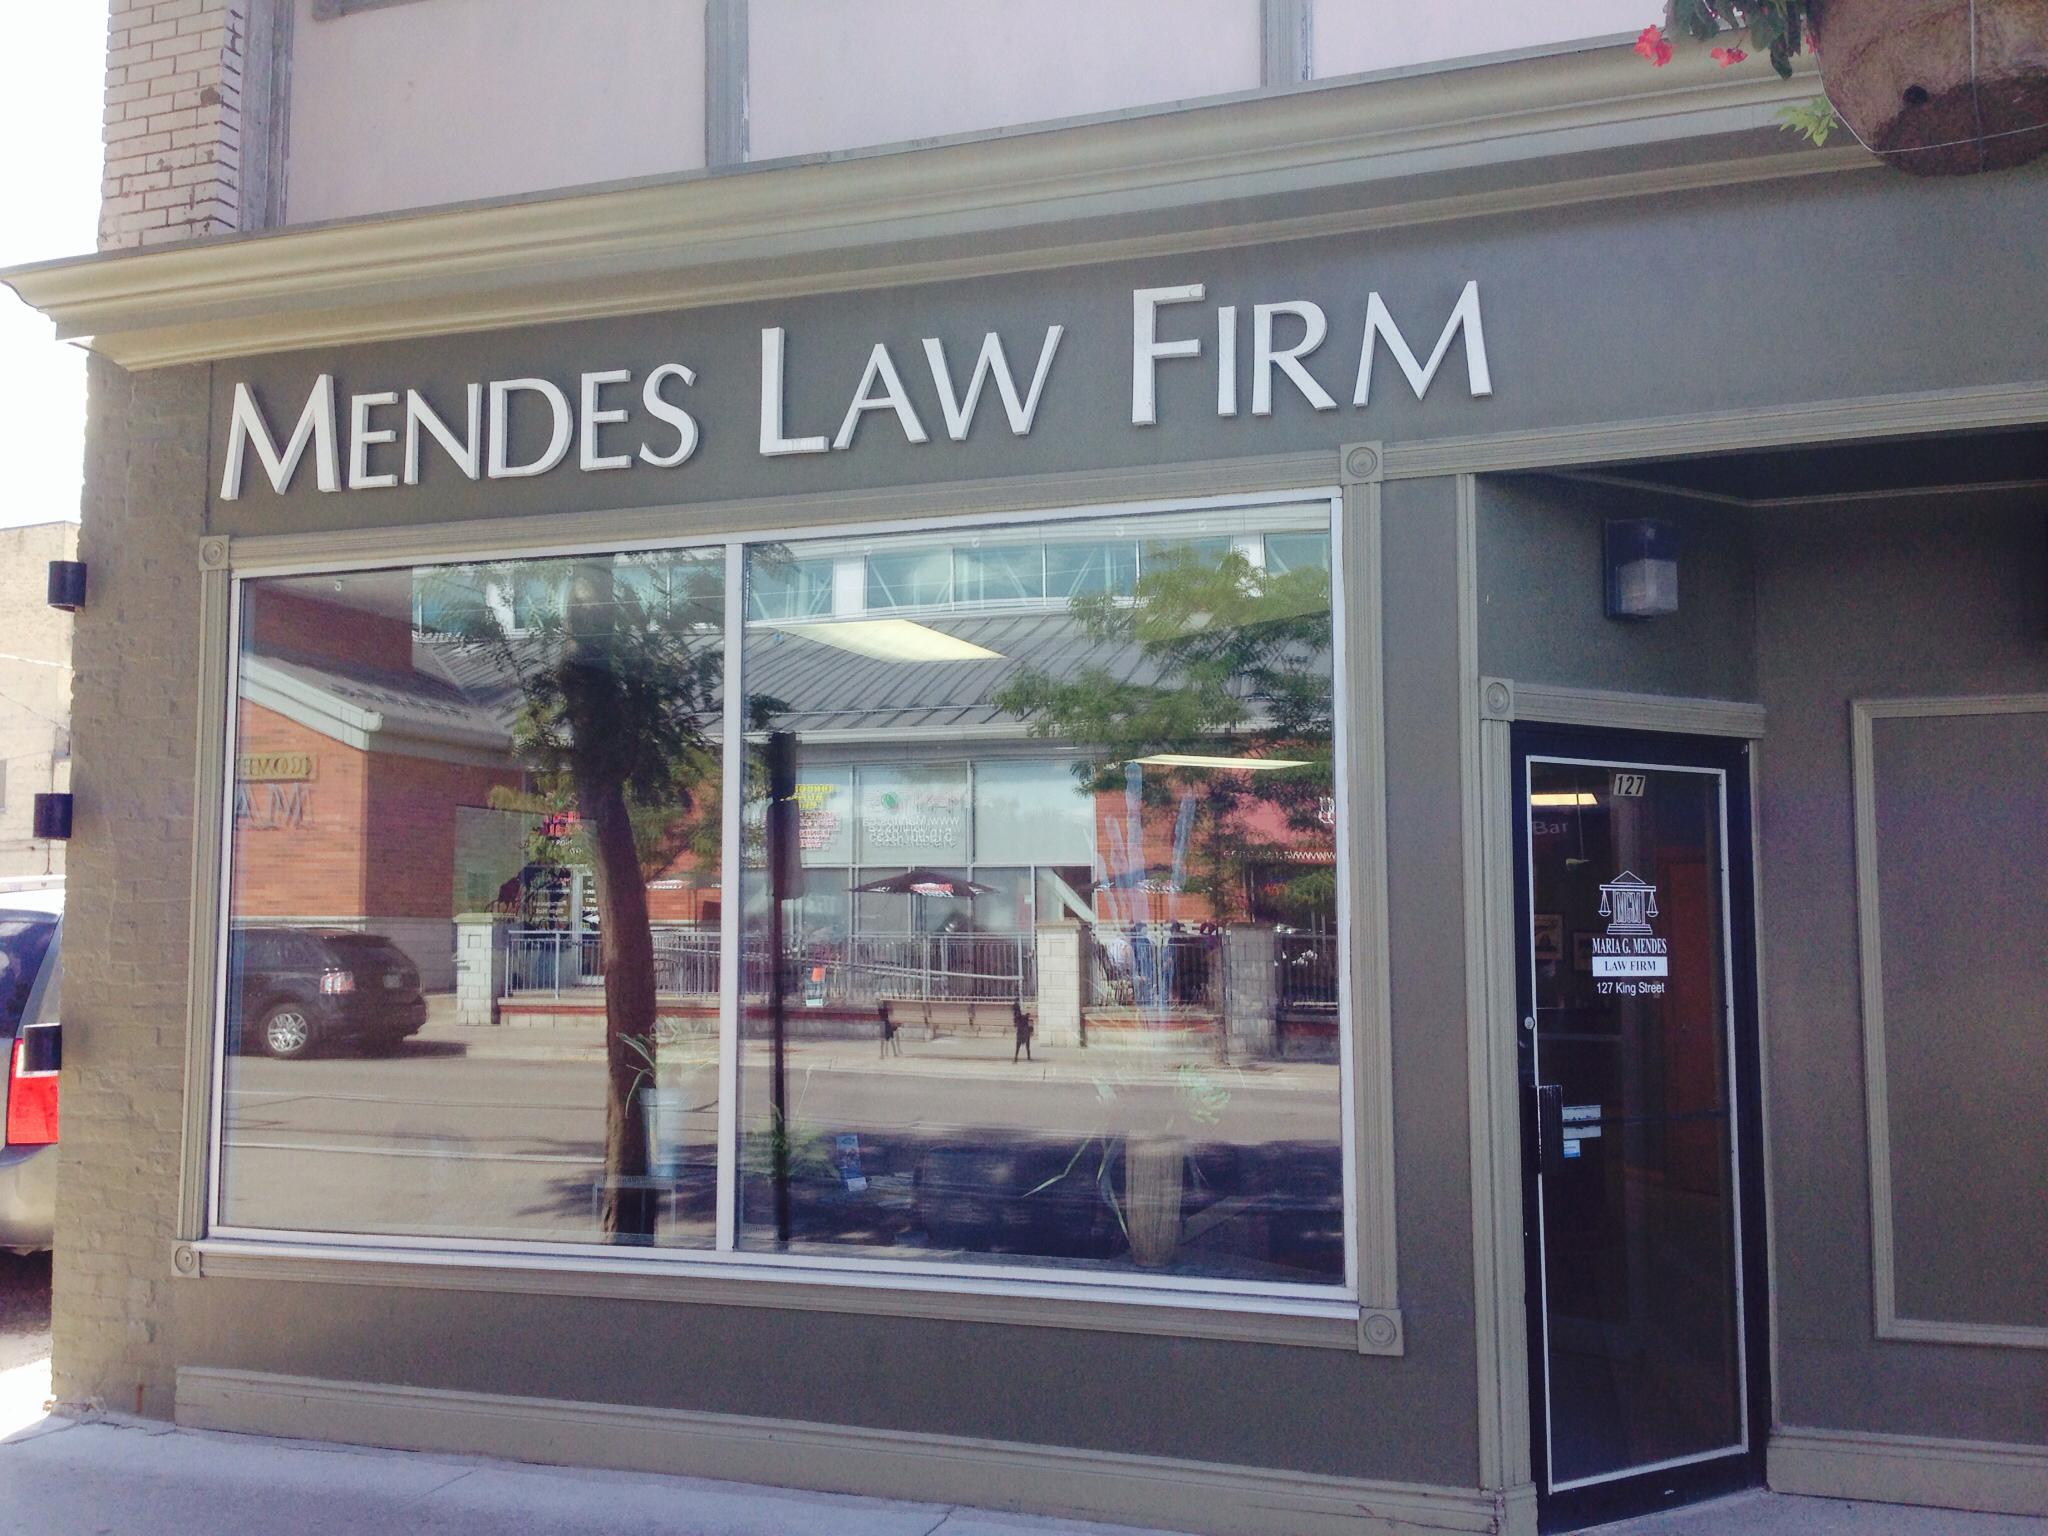 Mendes Law Firm in London